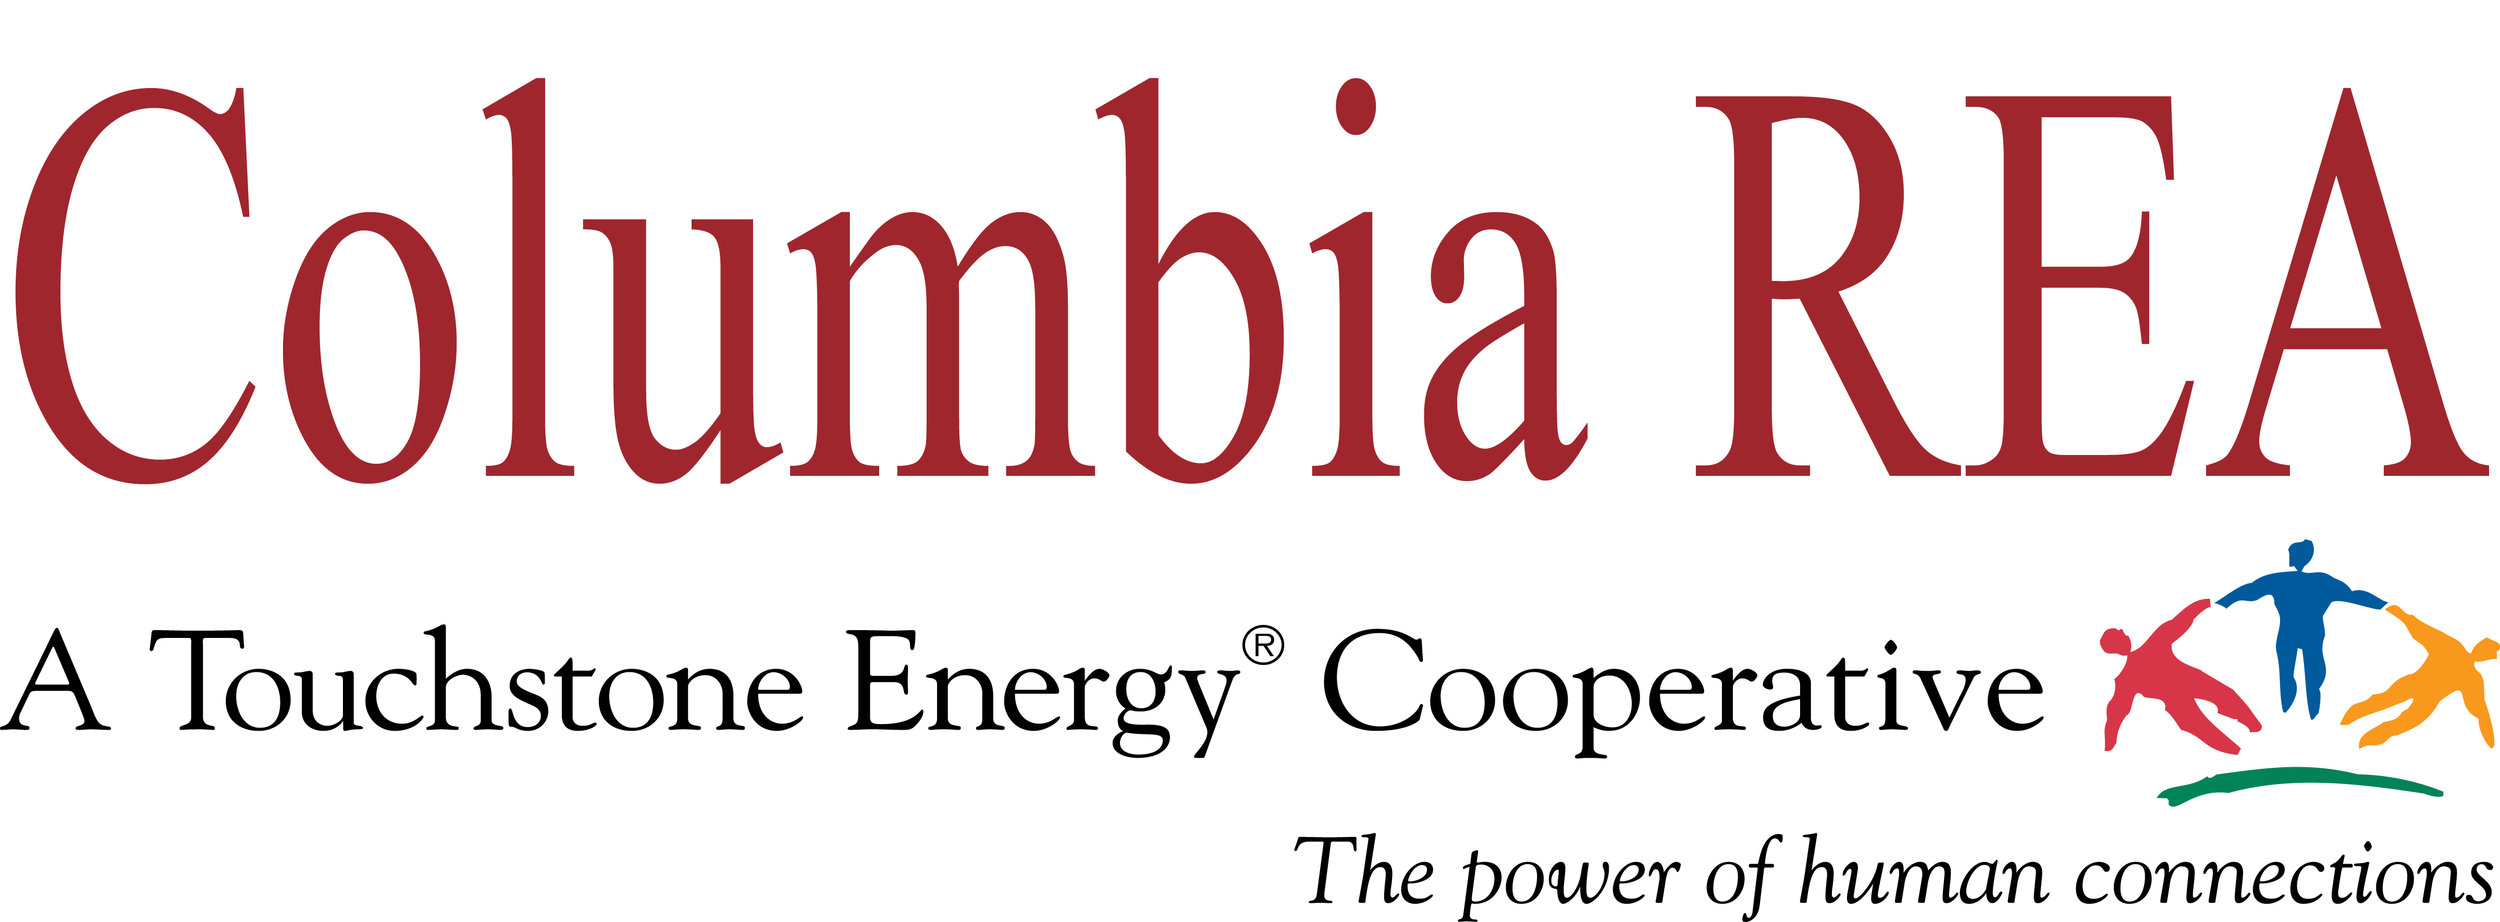 2013 Columbia REA Red Vertical Name only Logo.jpg